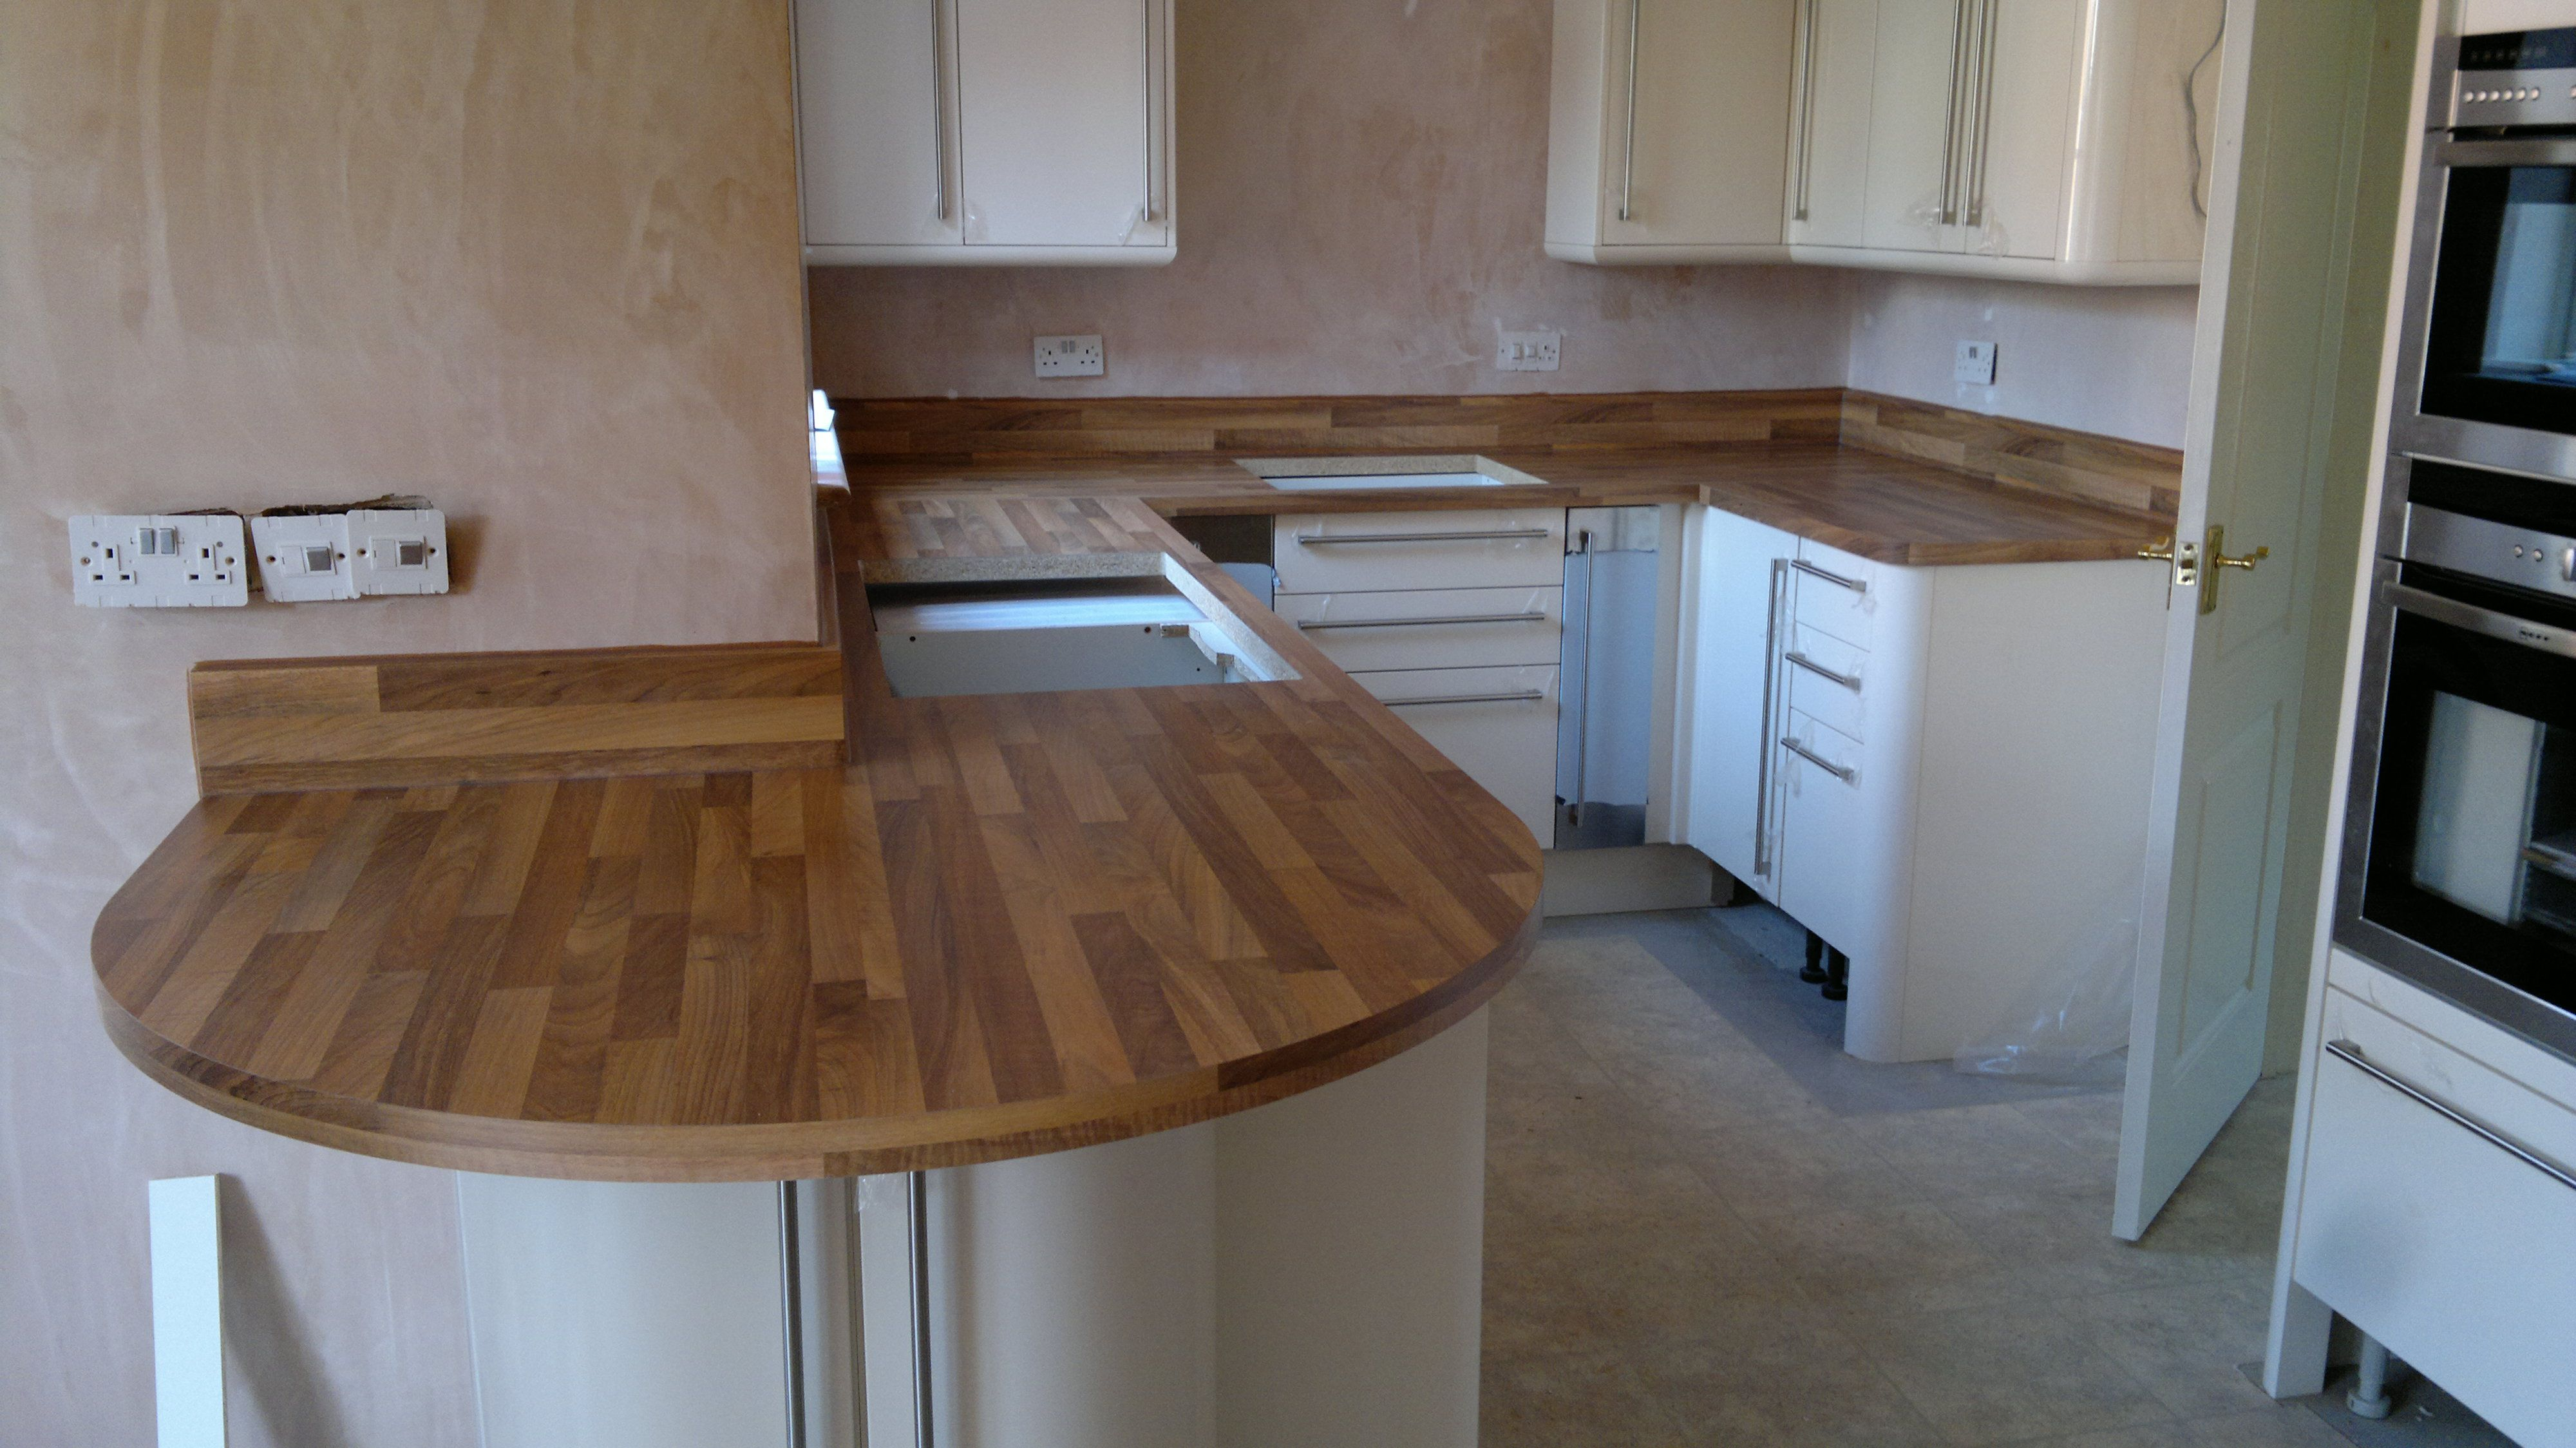 Wood effect laminate worktops fitted with for Wood effect kitchen units